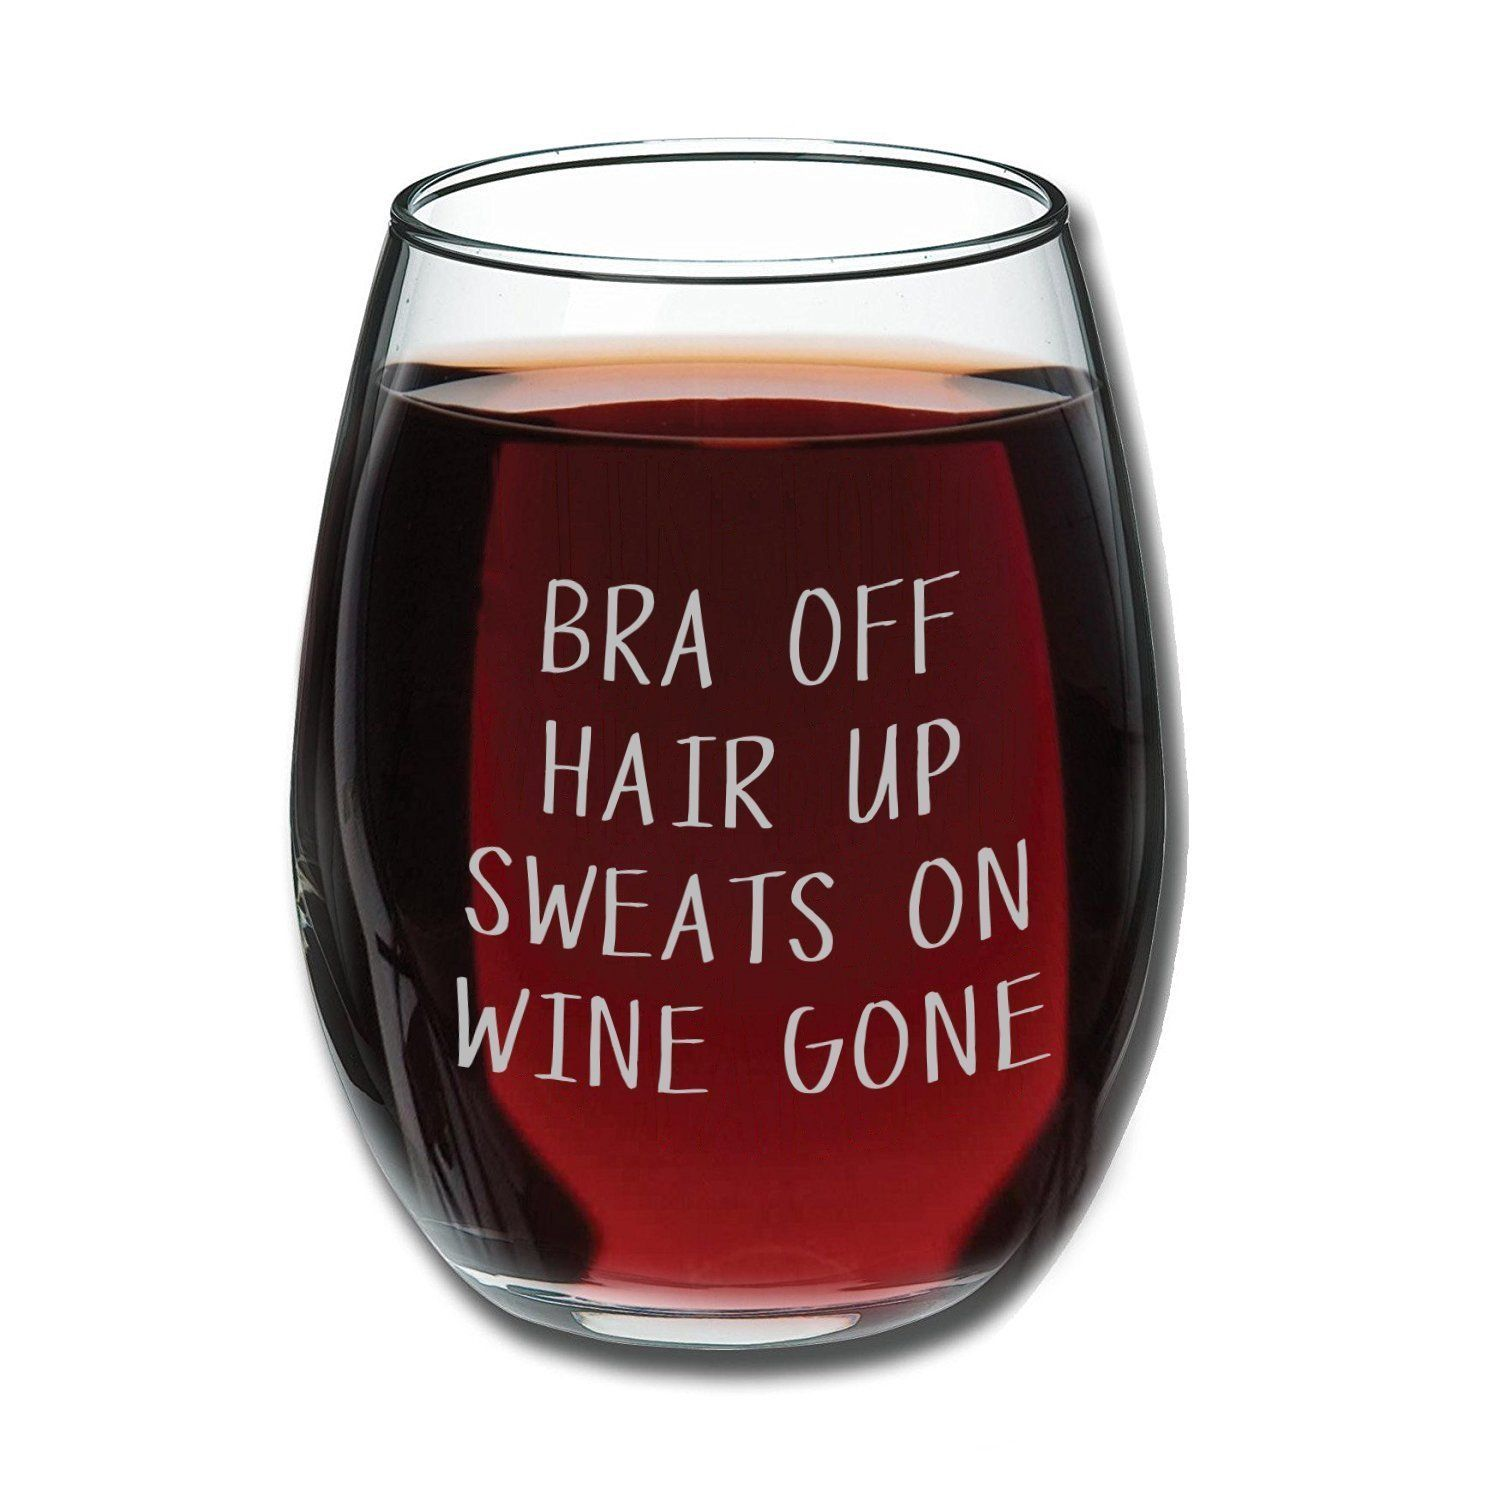 Amazon Com Bra Off Hair Up Sweats On Wine Gone Funny 15oz Wine Glass Unique Gift Idea For Her M Funny Wine Glass Gifts For Wine Lovers Stemless Wine Glass